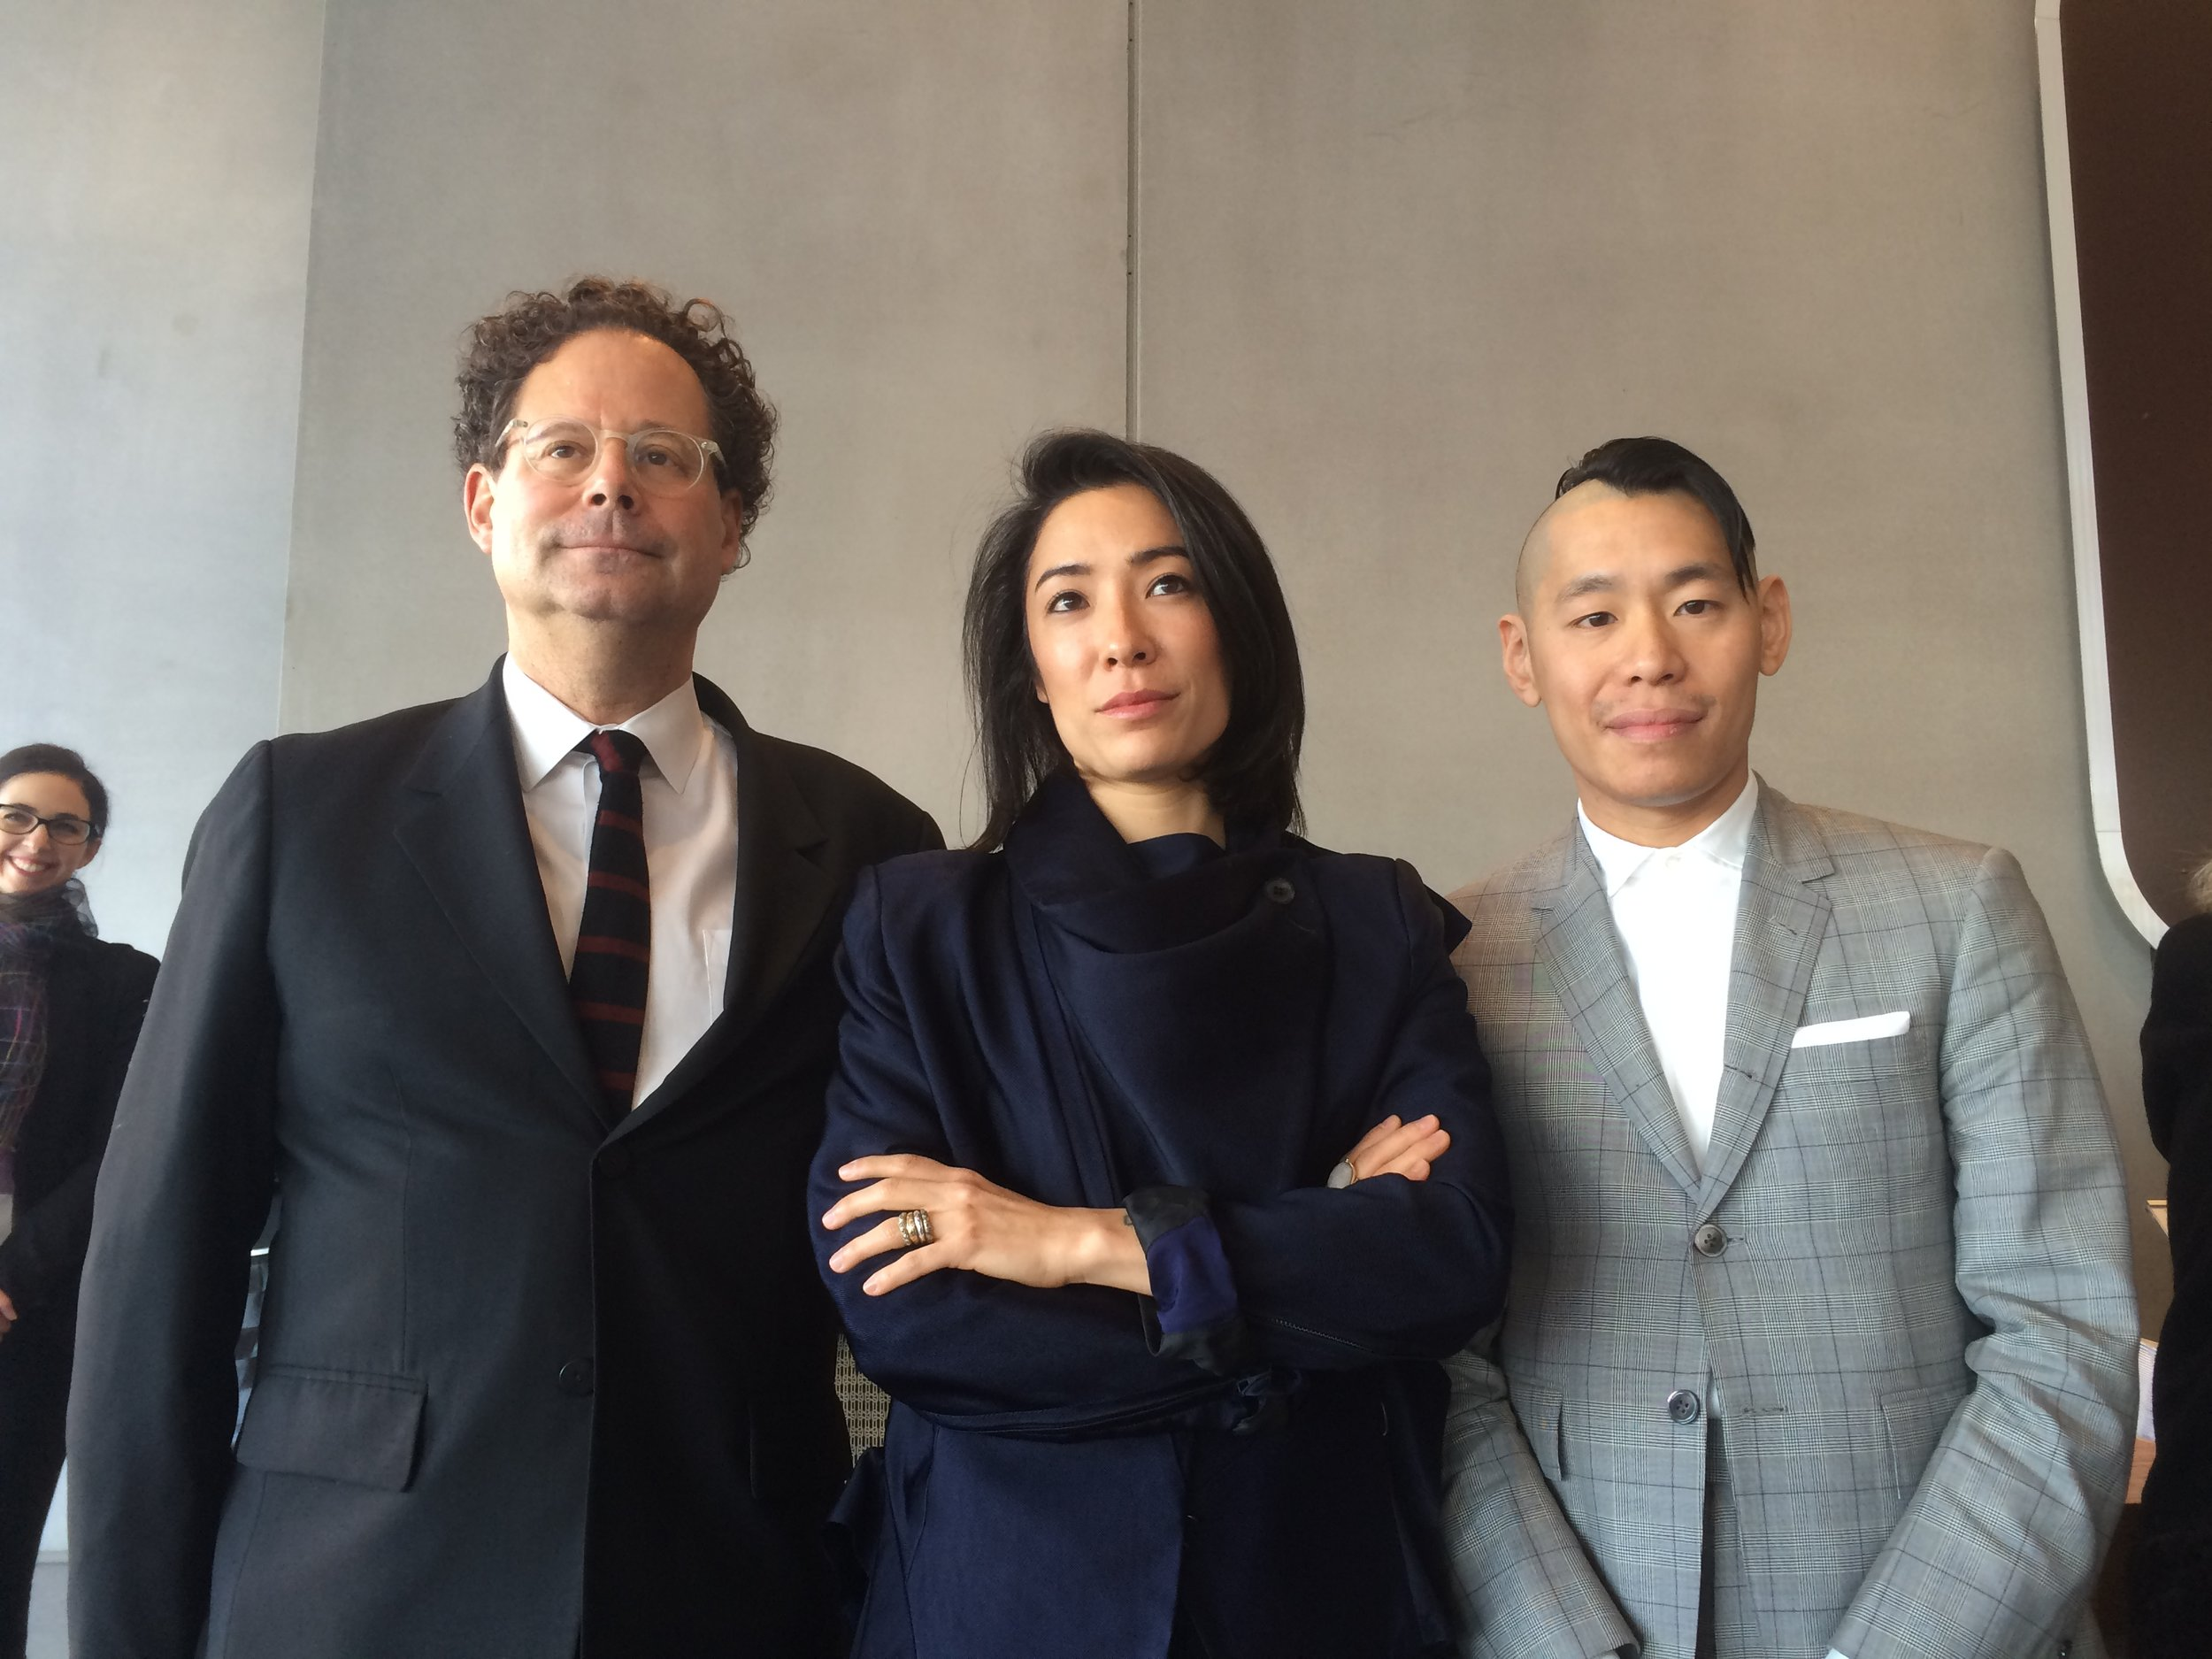 Adam D. Weinberg, the Alice Pratt Brown Director of the Whitney Museum and Biennial curators Christopher Y. Lew and Mia Locks. (Photo by Estate of Fred W. McDarrah)